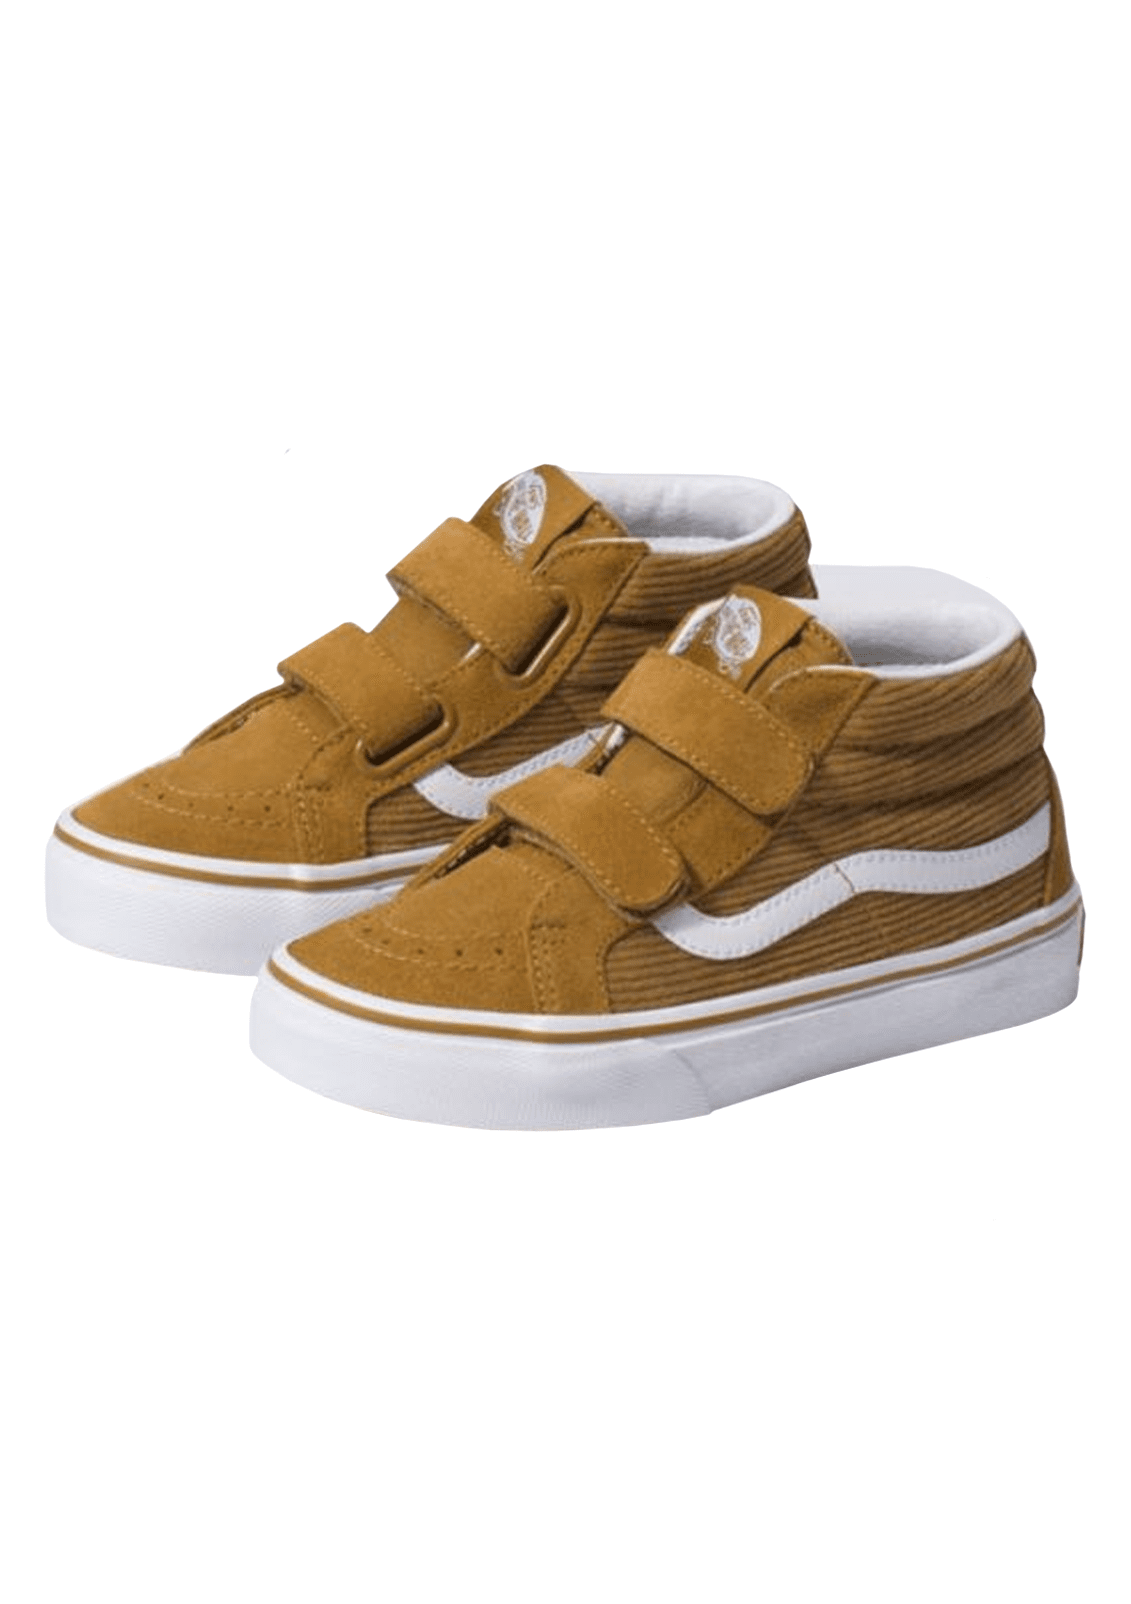 e22daac011 Kids Toddlers Boy s Corduroy Sk8-Mid Reissue V Shoe